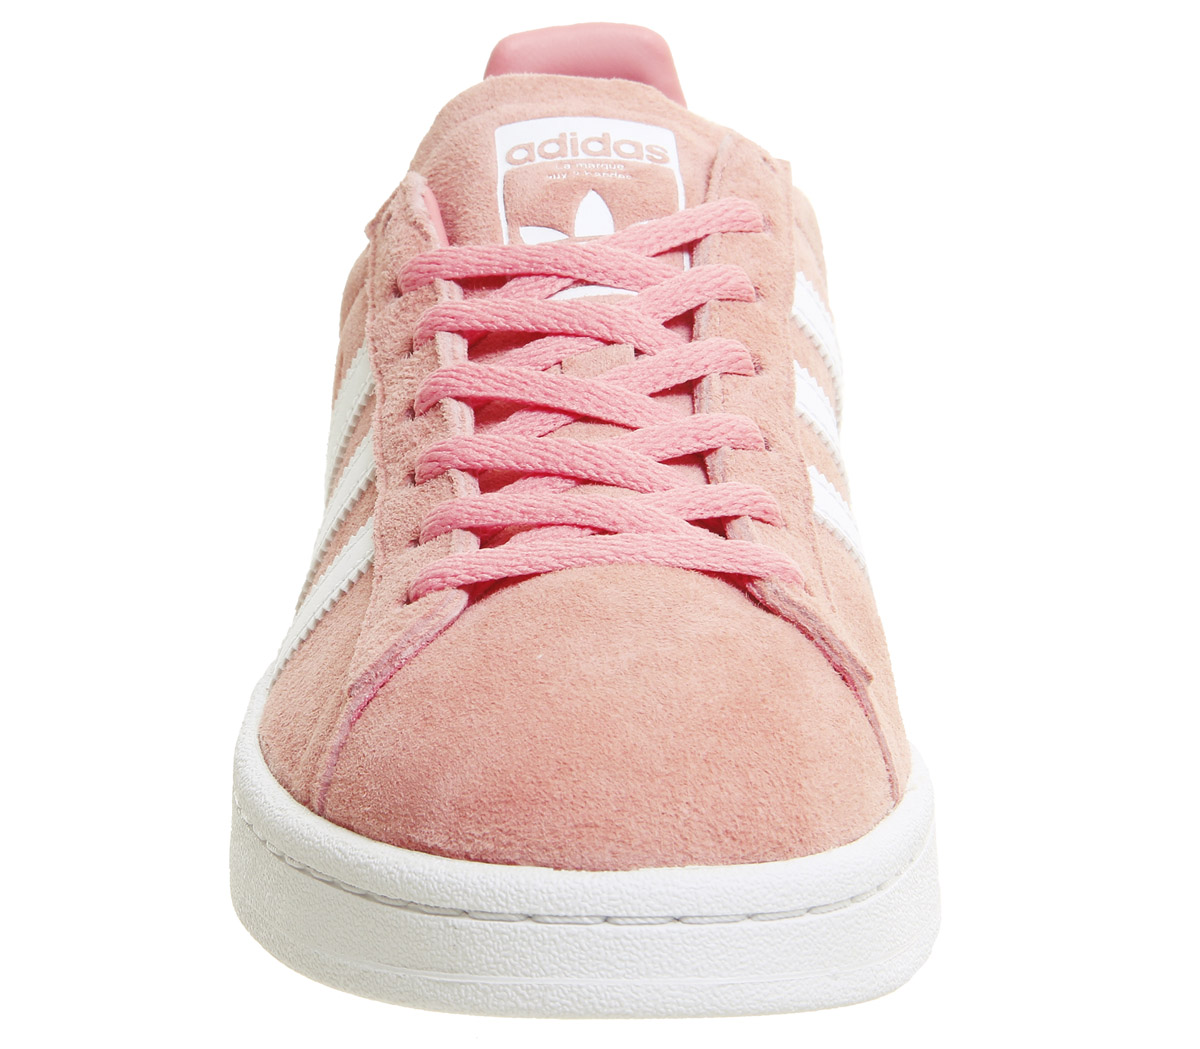 Womens Adidas Campus Shoes Trainers TACTILE ROSE Trainers Shoes Campus dce7c5